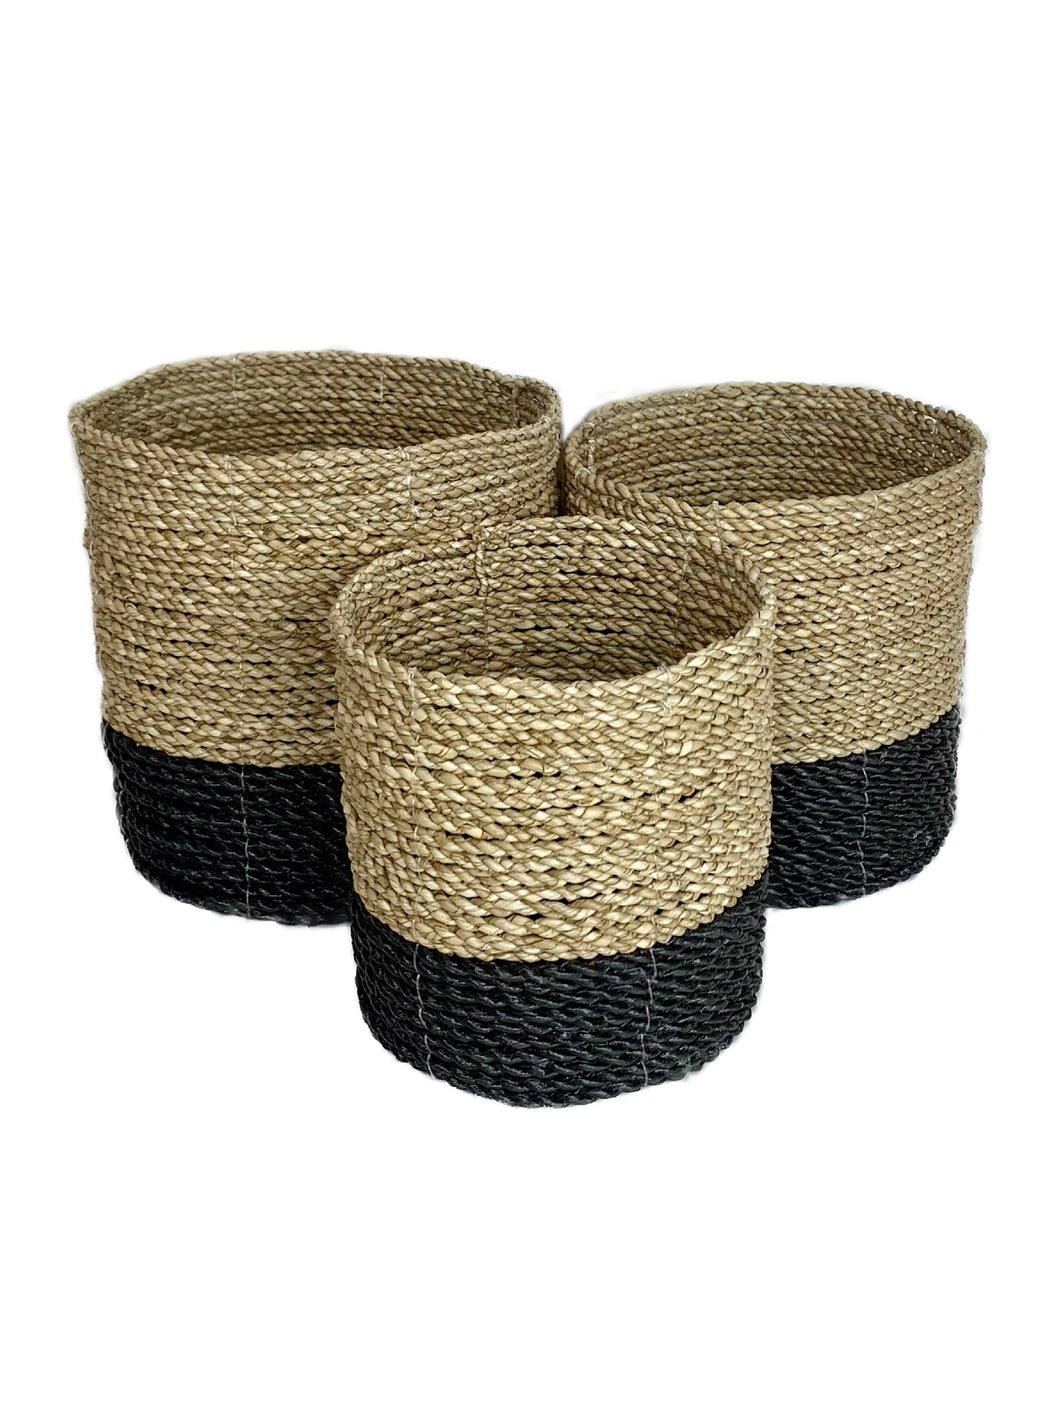 basket set laundry storage handmade woven bali ethical sustainable